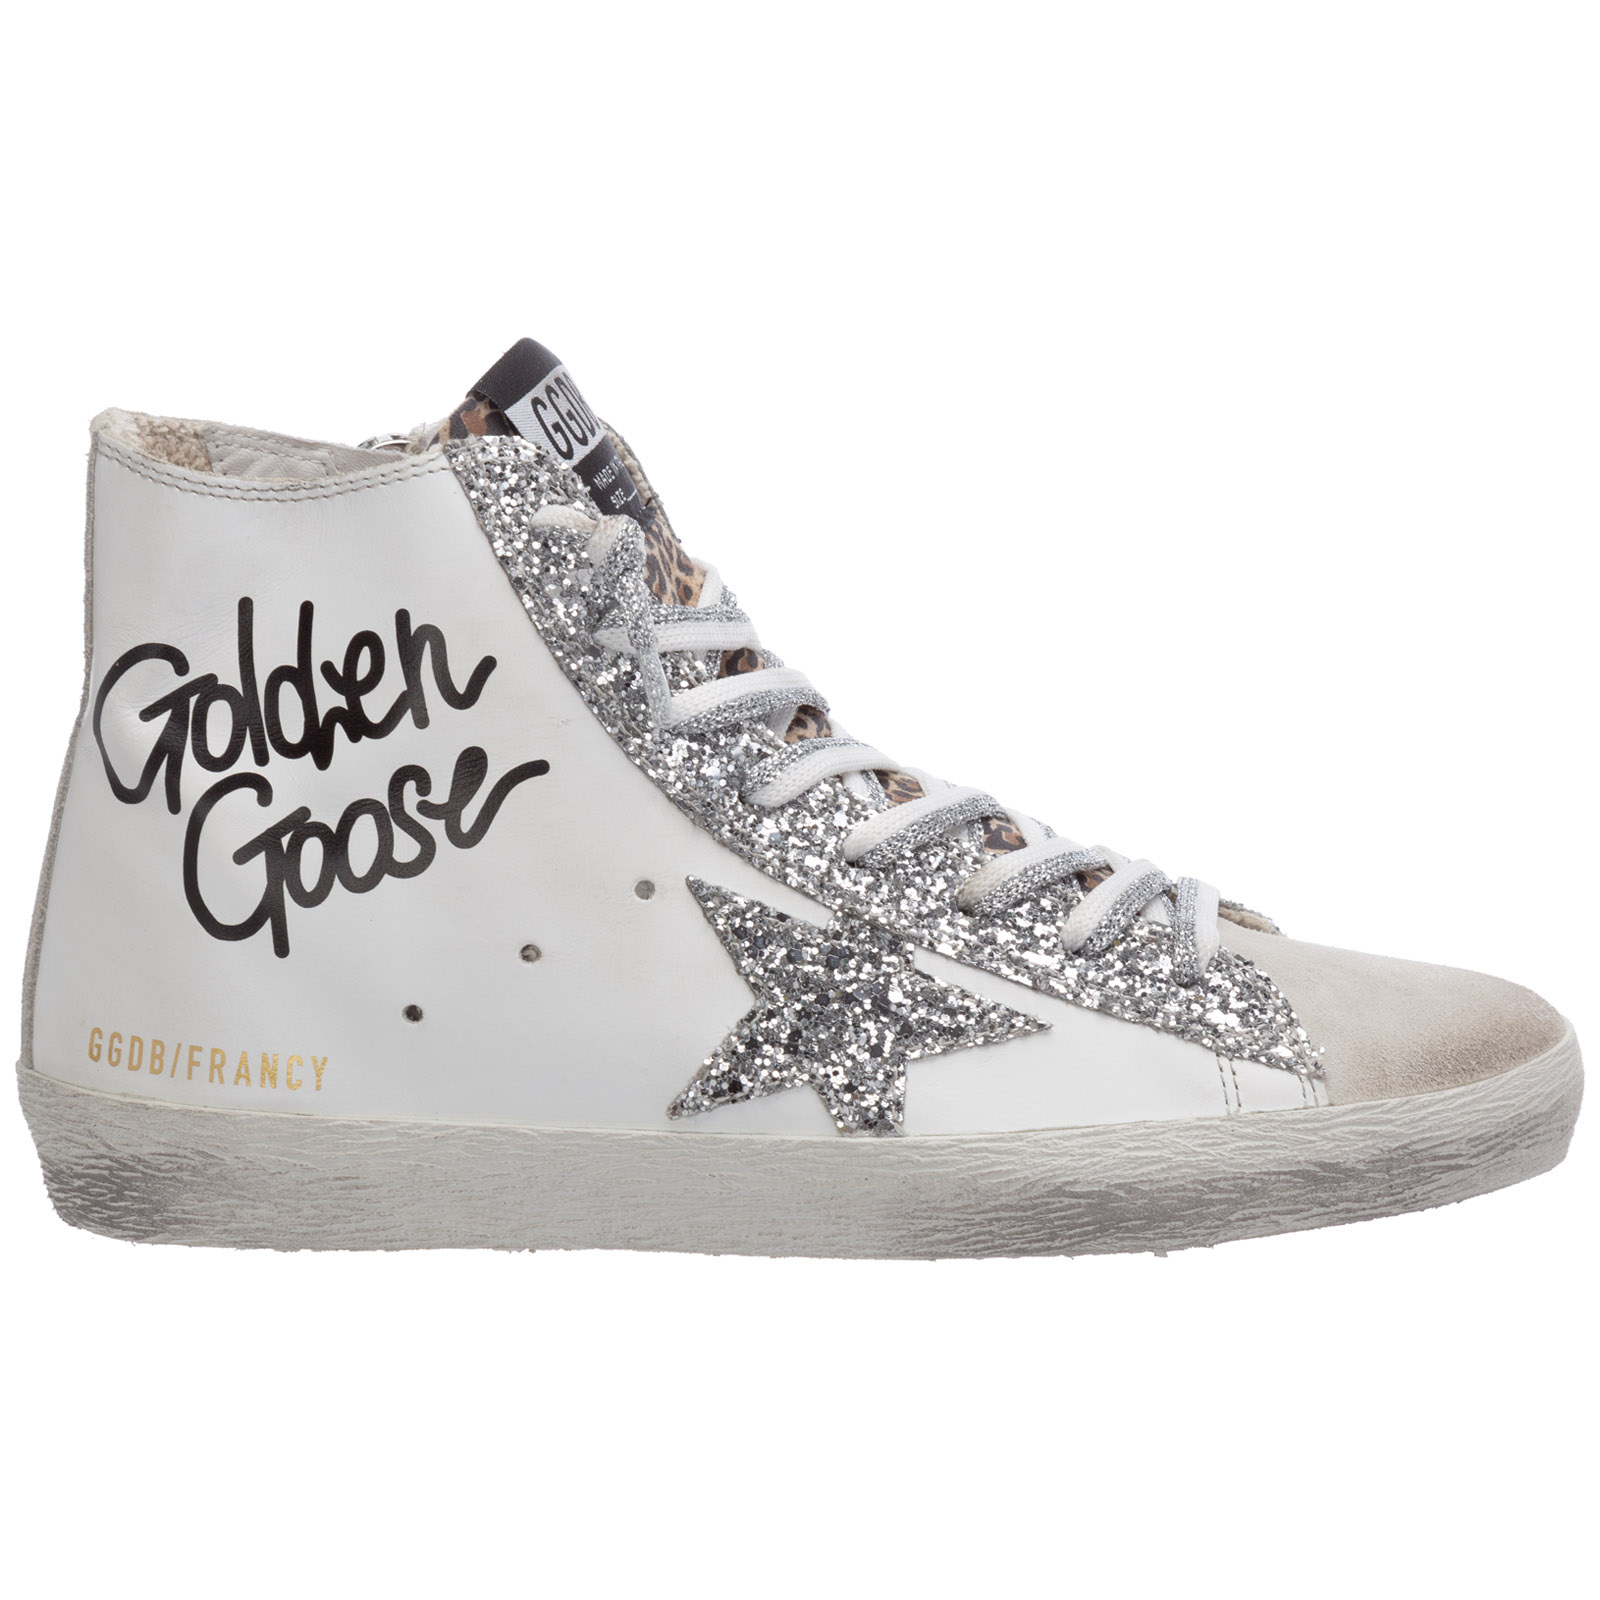 Golden Goose Leathers WOMEN'S SHOES HIGH TOP LEATHER TRAINERS SNEAKERS FRANCY